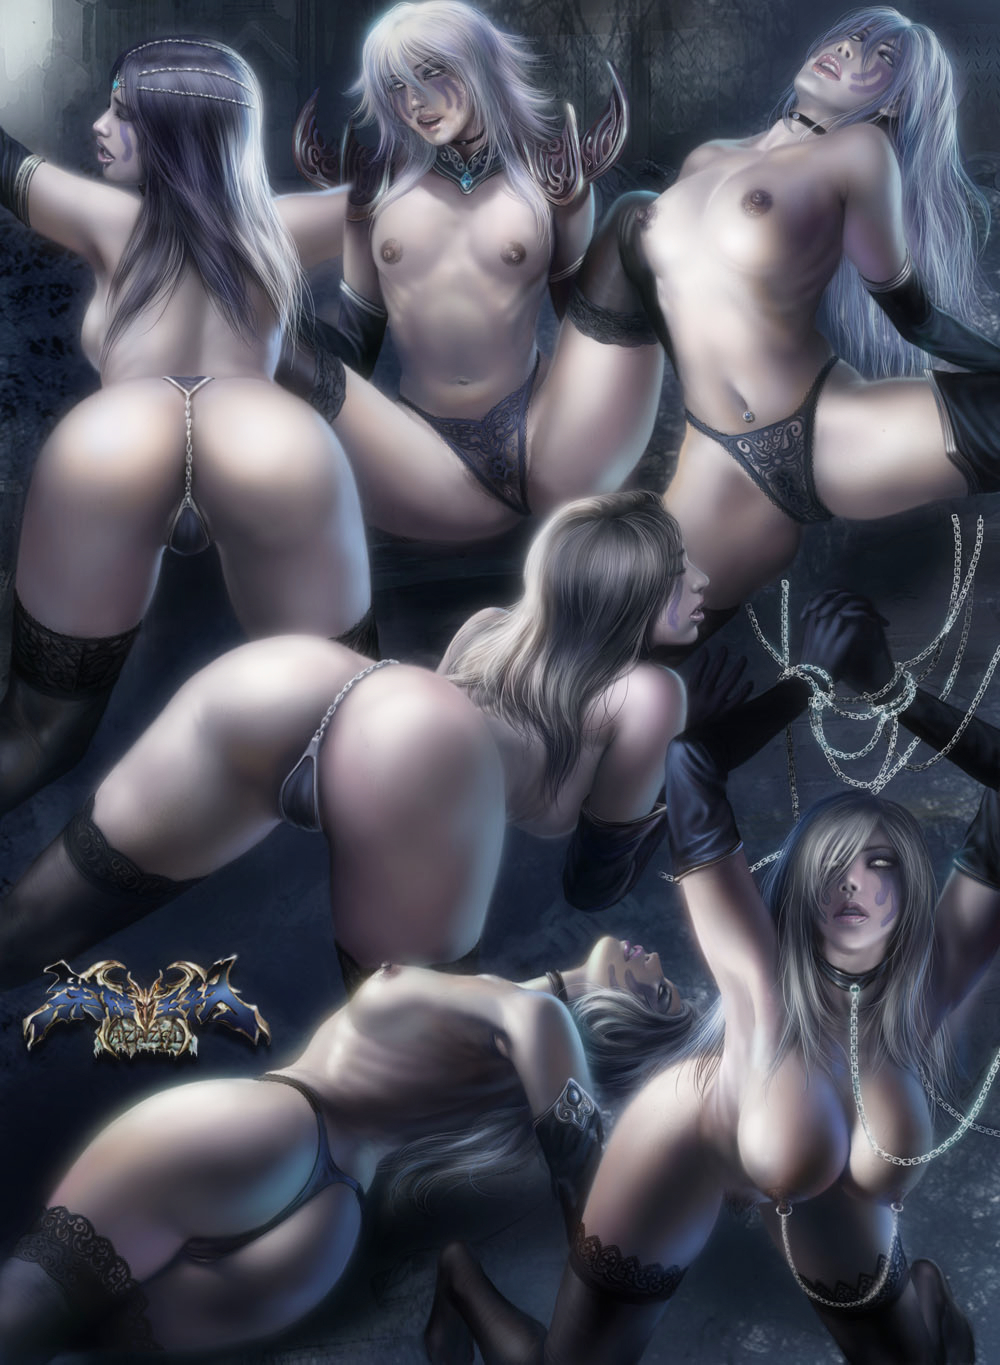 Cosplay girls hentai warlock naked sex pictures